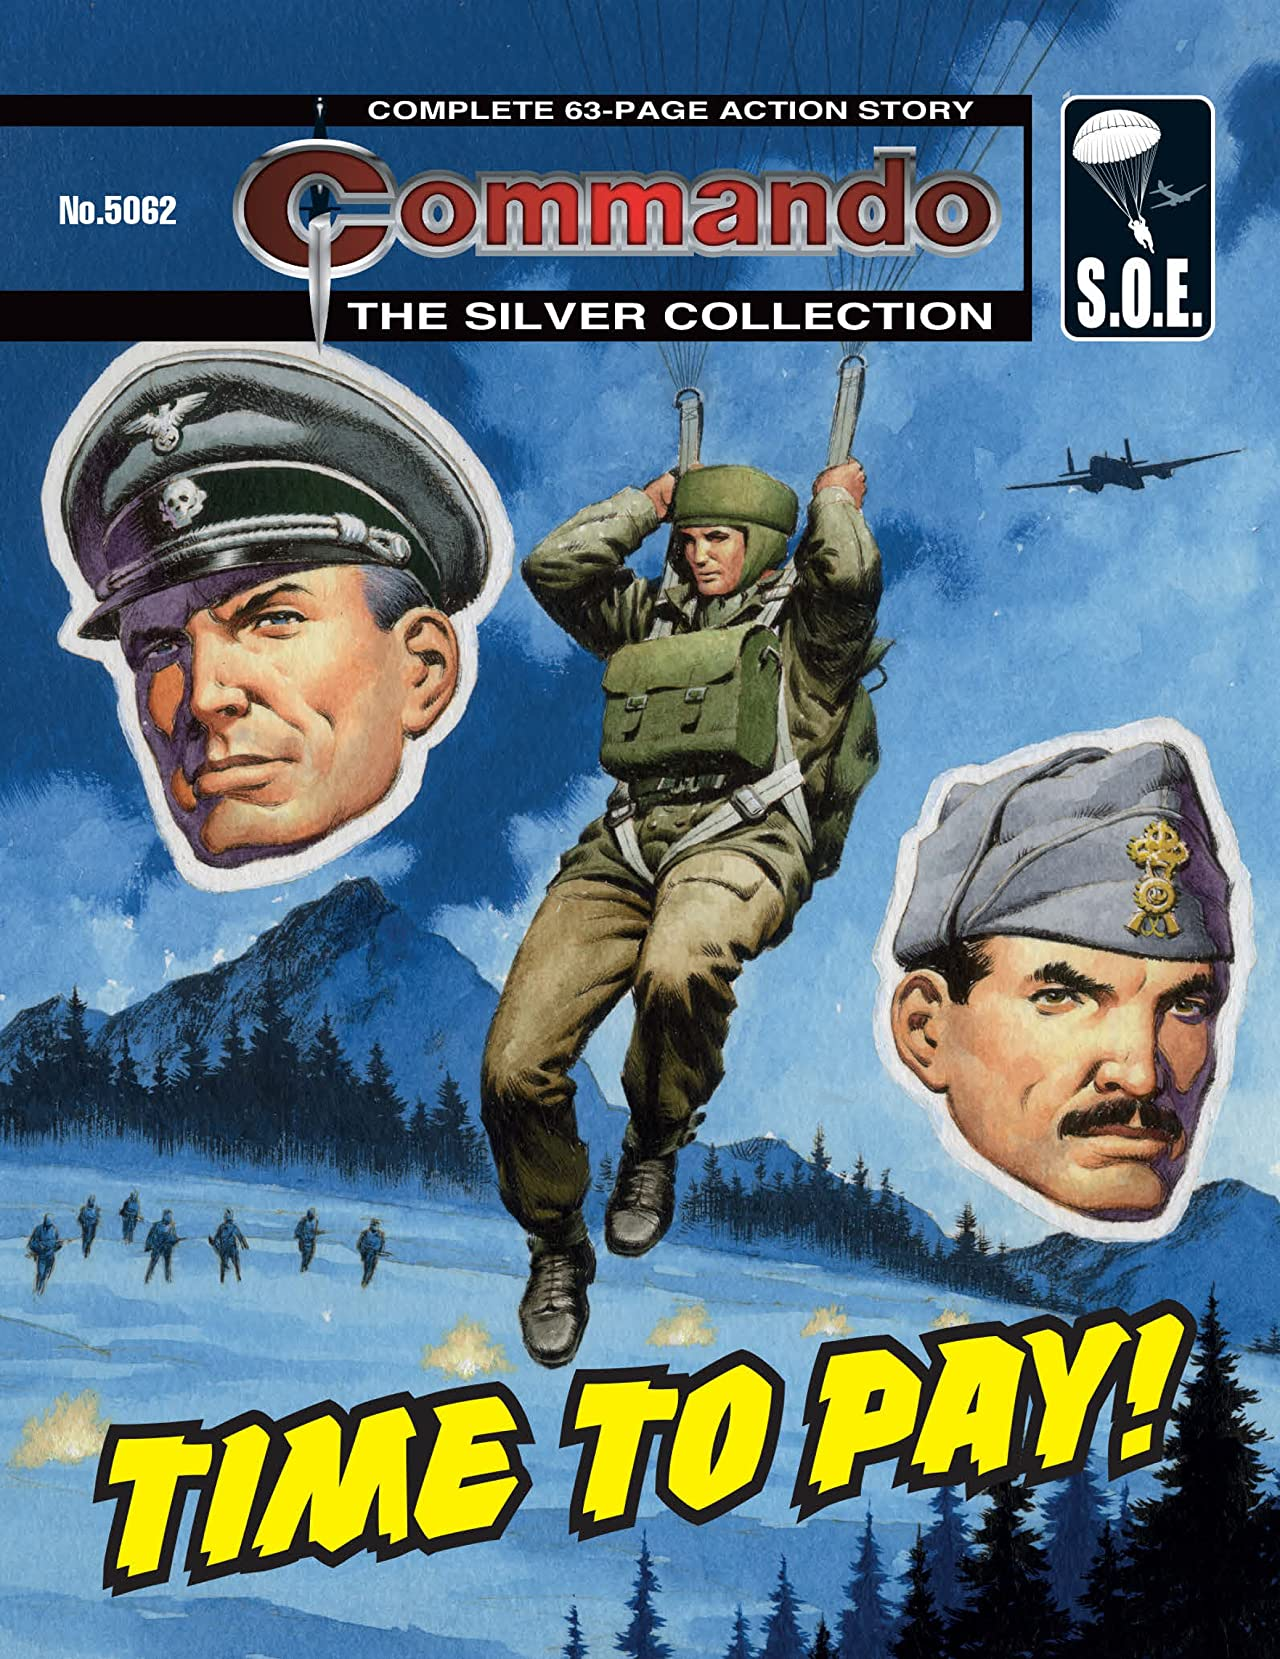 Commando #5062: Time To Pay!